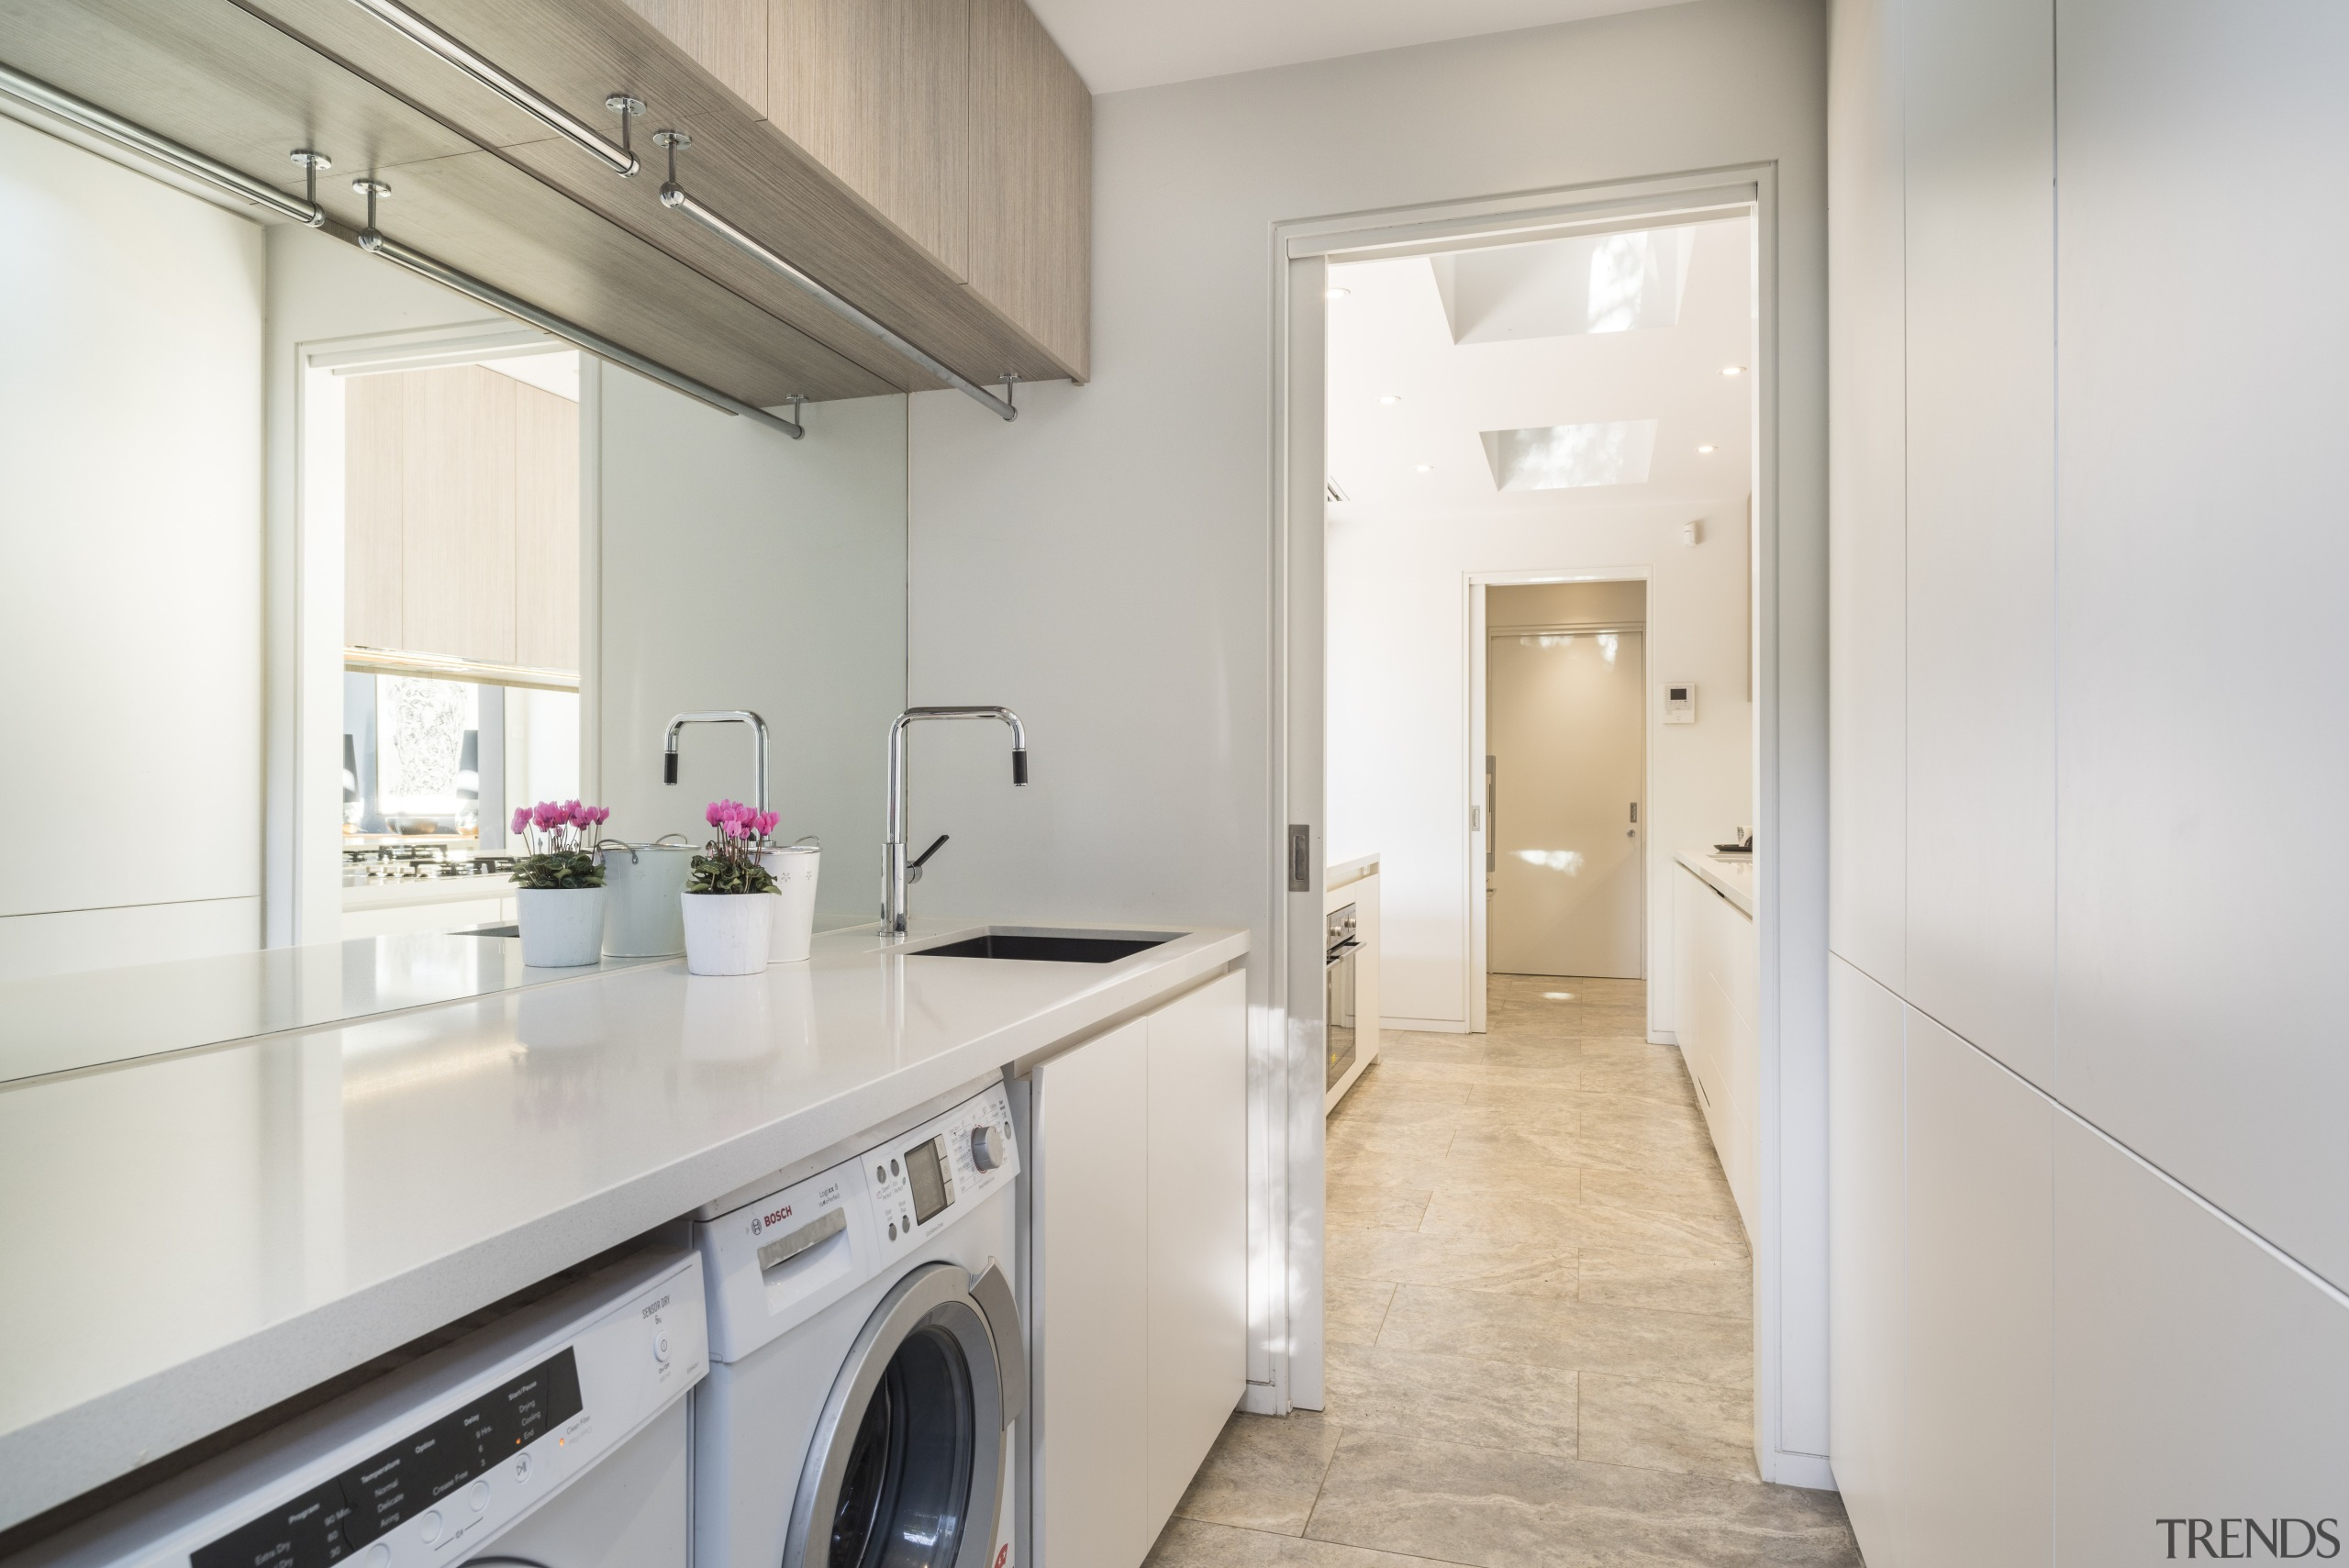 The generous bench space in this laundry is countertop, cuisine classique, floor, home appliance, interior design, kitchen, property, real estate, room, gray